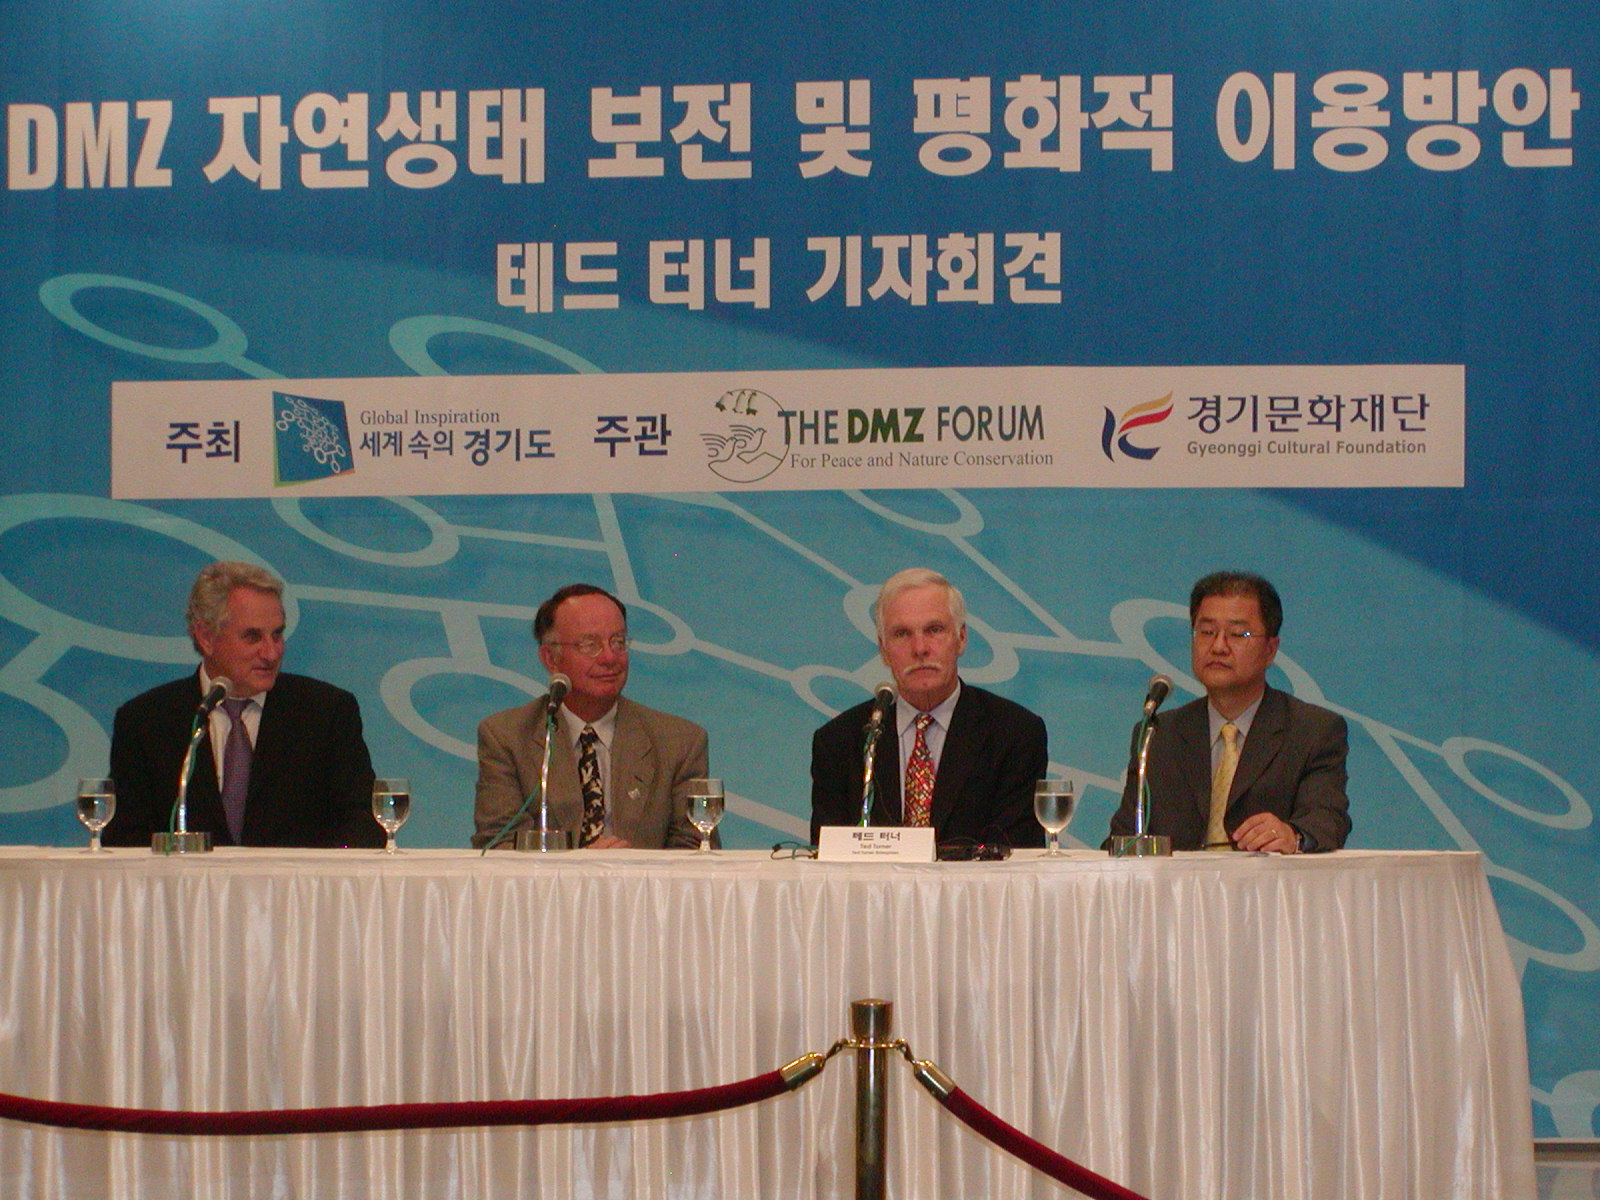 DMZ Meeting with Ted Turner CNN